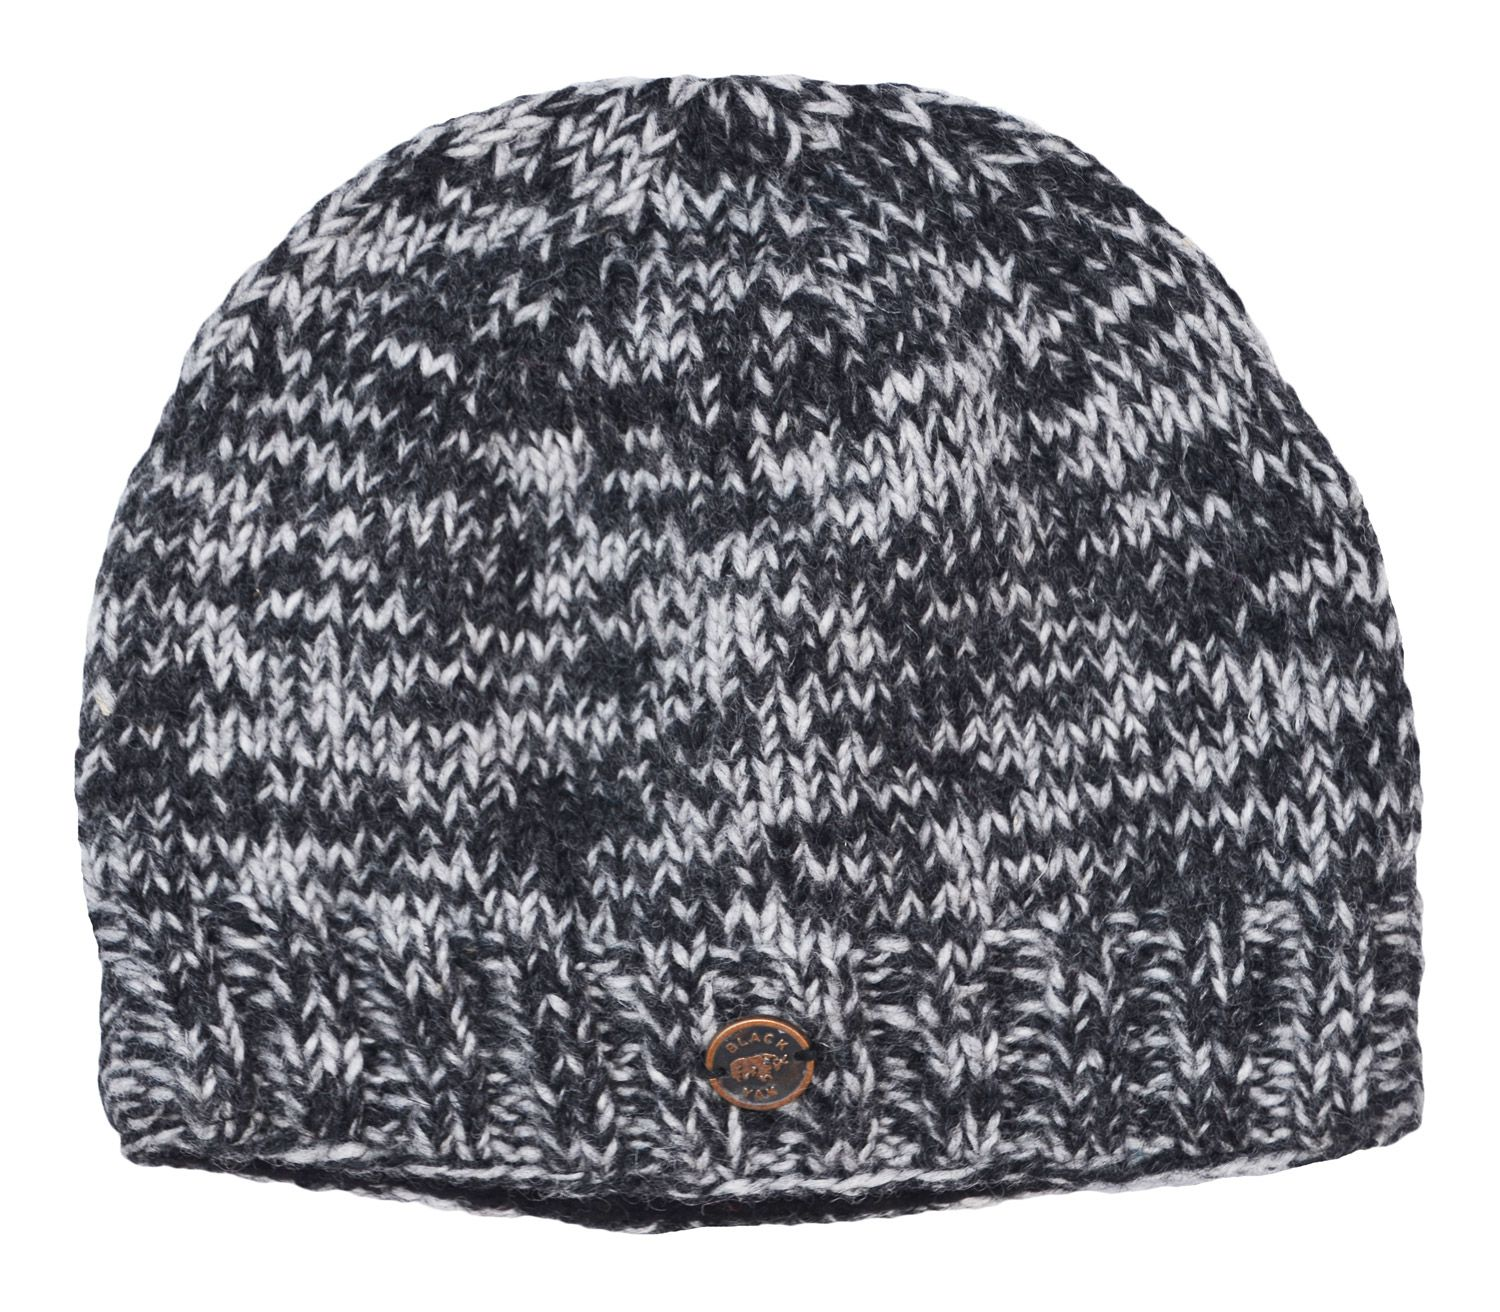 Pure Wool - half fleece - lined beanie - Two tone grey  7dadbbcfb06